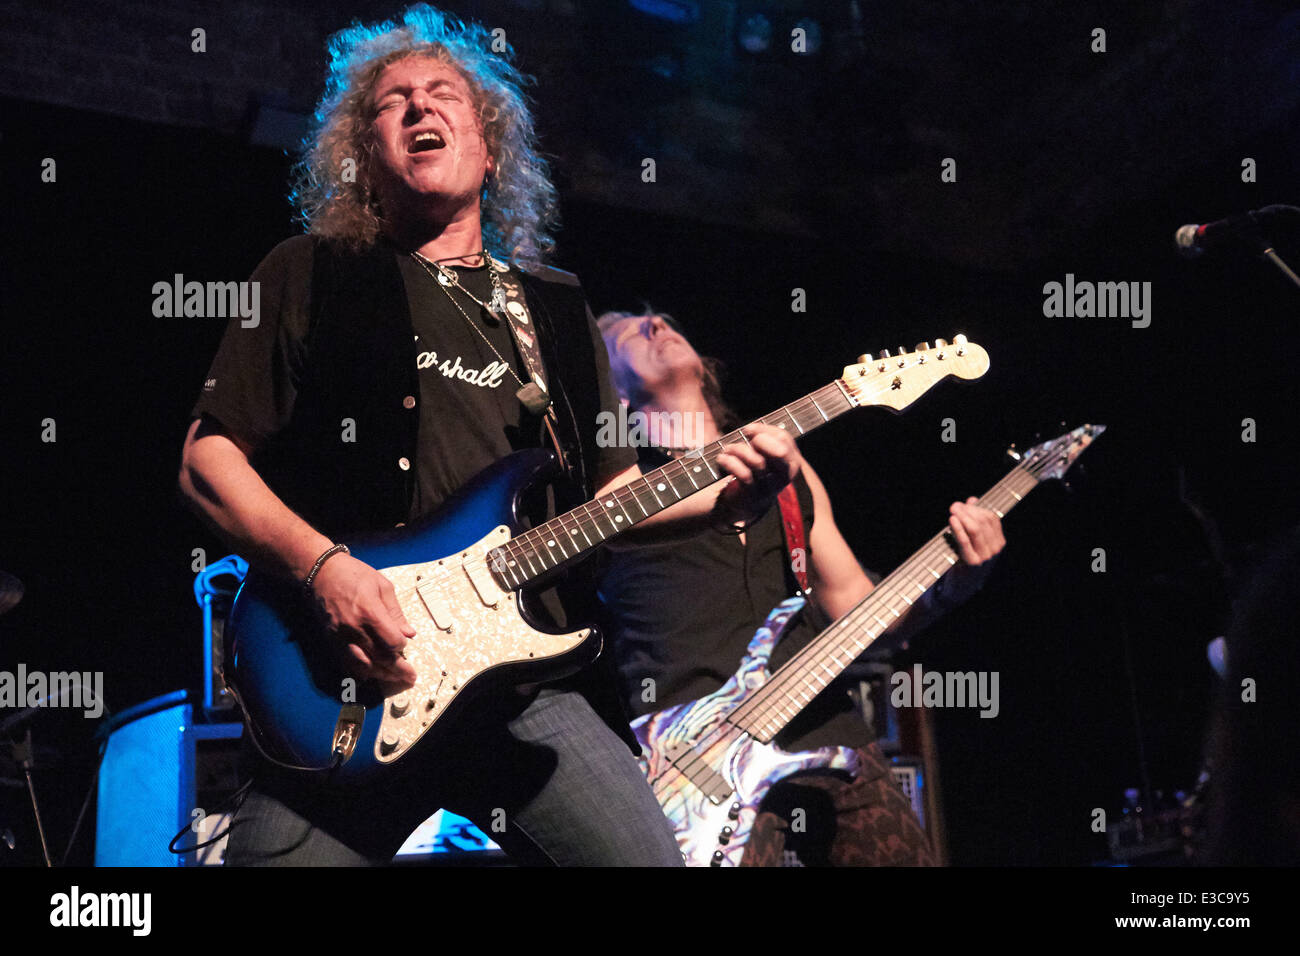 Californian Hard Rock/Heavy Metal band Y&T in concert at The